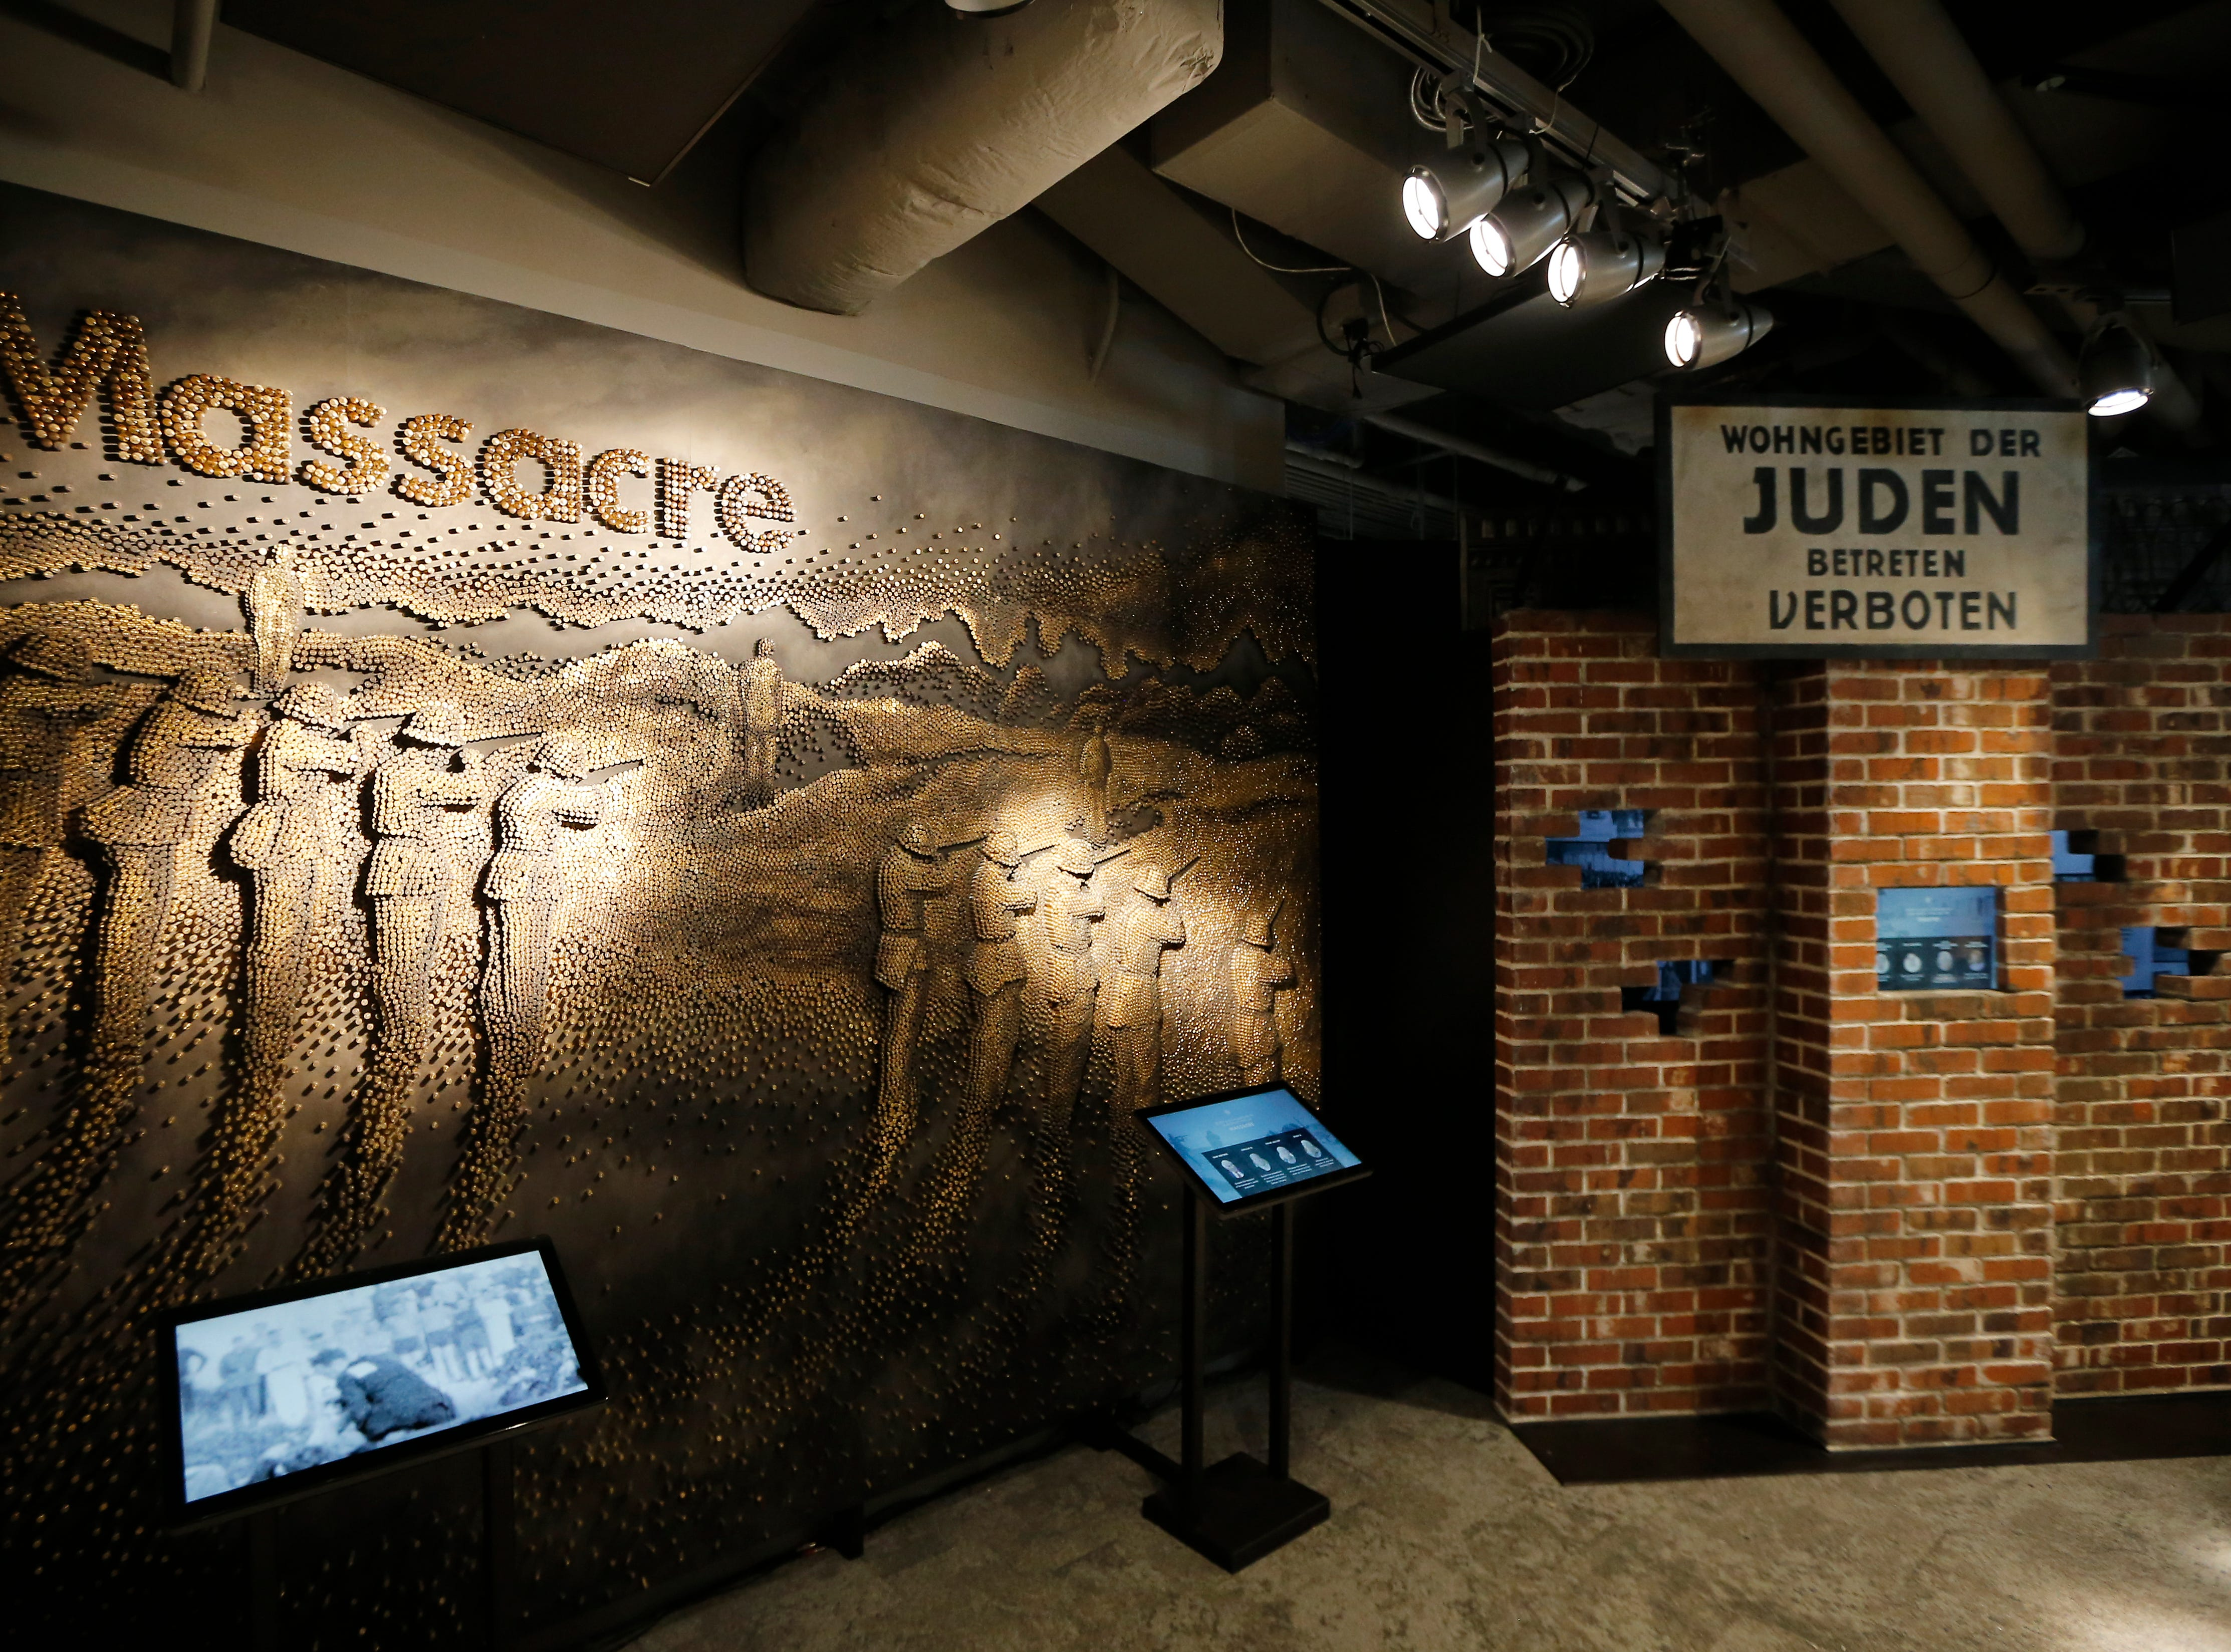 A mural depicting an execution scene is created with thousands of bullet casings in the new Holocaust and Humanity Center at the Cincinnati Museum Center in the Queensgate neighborhood of Cincinnati on Tuesday, Jan. 22, 2019. The new exhibit covering the events before, during and after the Holocaust will be open to the public Jan. 27.